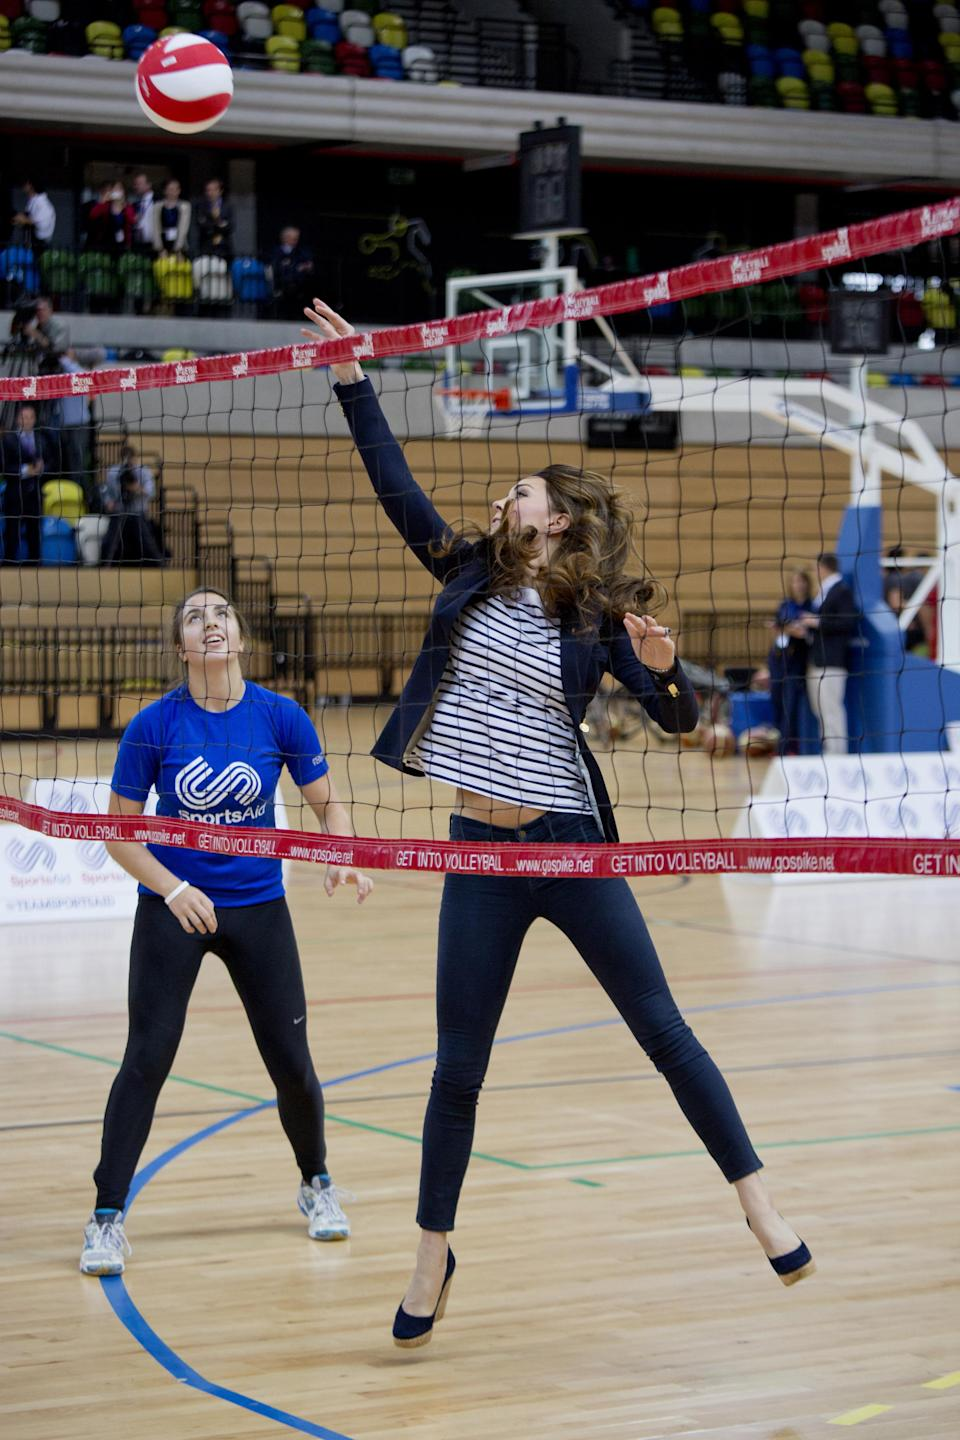 Britain's Catherine, Duchess of Cambridge, plays volleyball as she attends a SportsAid athlete workshop at the Copper Box in the Olympic Park in London October 18, 2013.     REUTERS/David Bebber/pool (BRITAIN  - Tags: ENTERTAINMENT ROYALS SPORT TPX IMAGES OF THE DAY SPORT VOLLEYBALL)